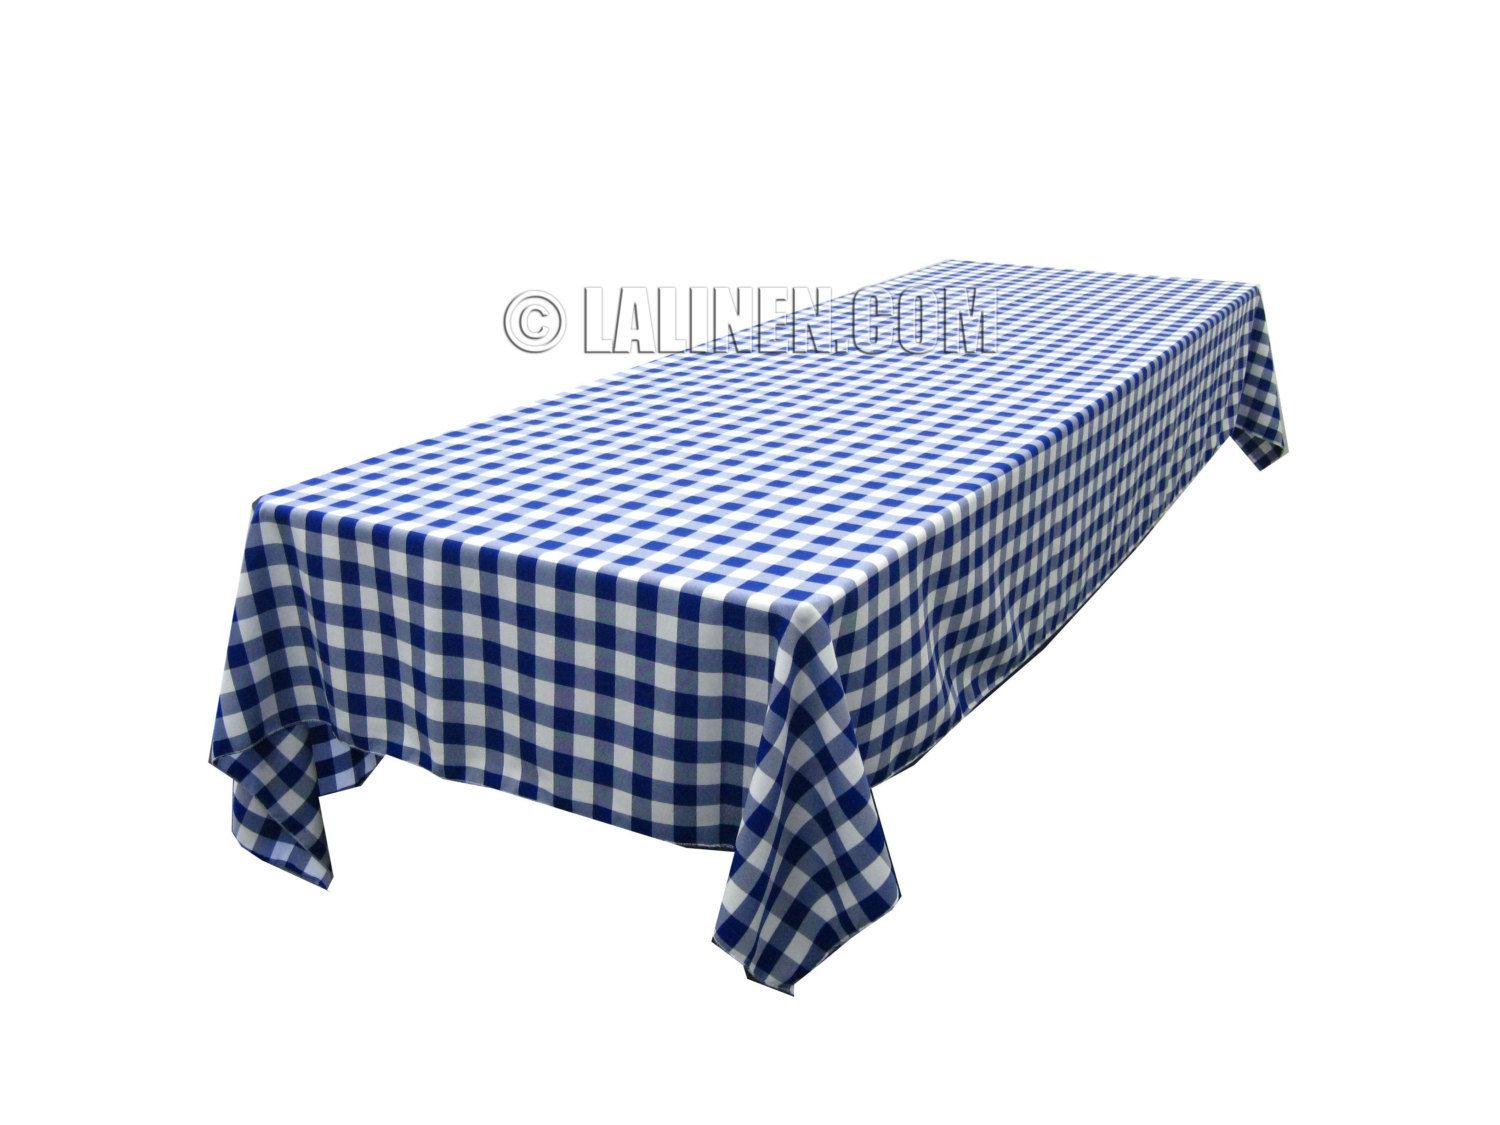 Polyester Checkered Table Linens . Made in the USA. $19.96, via Etsy.